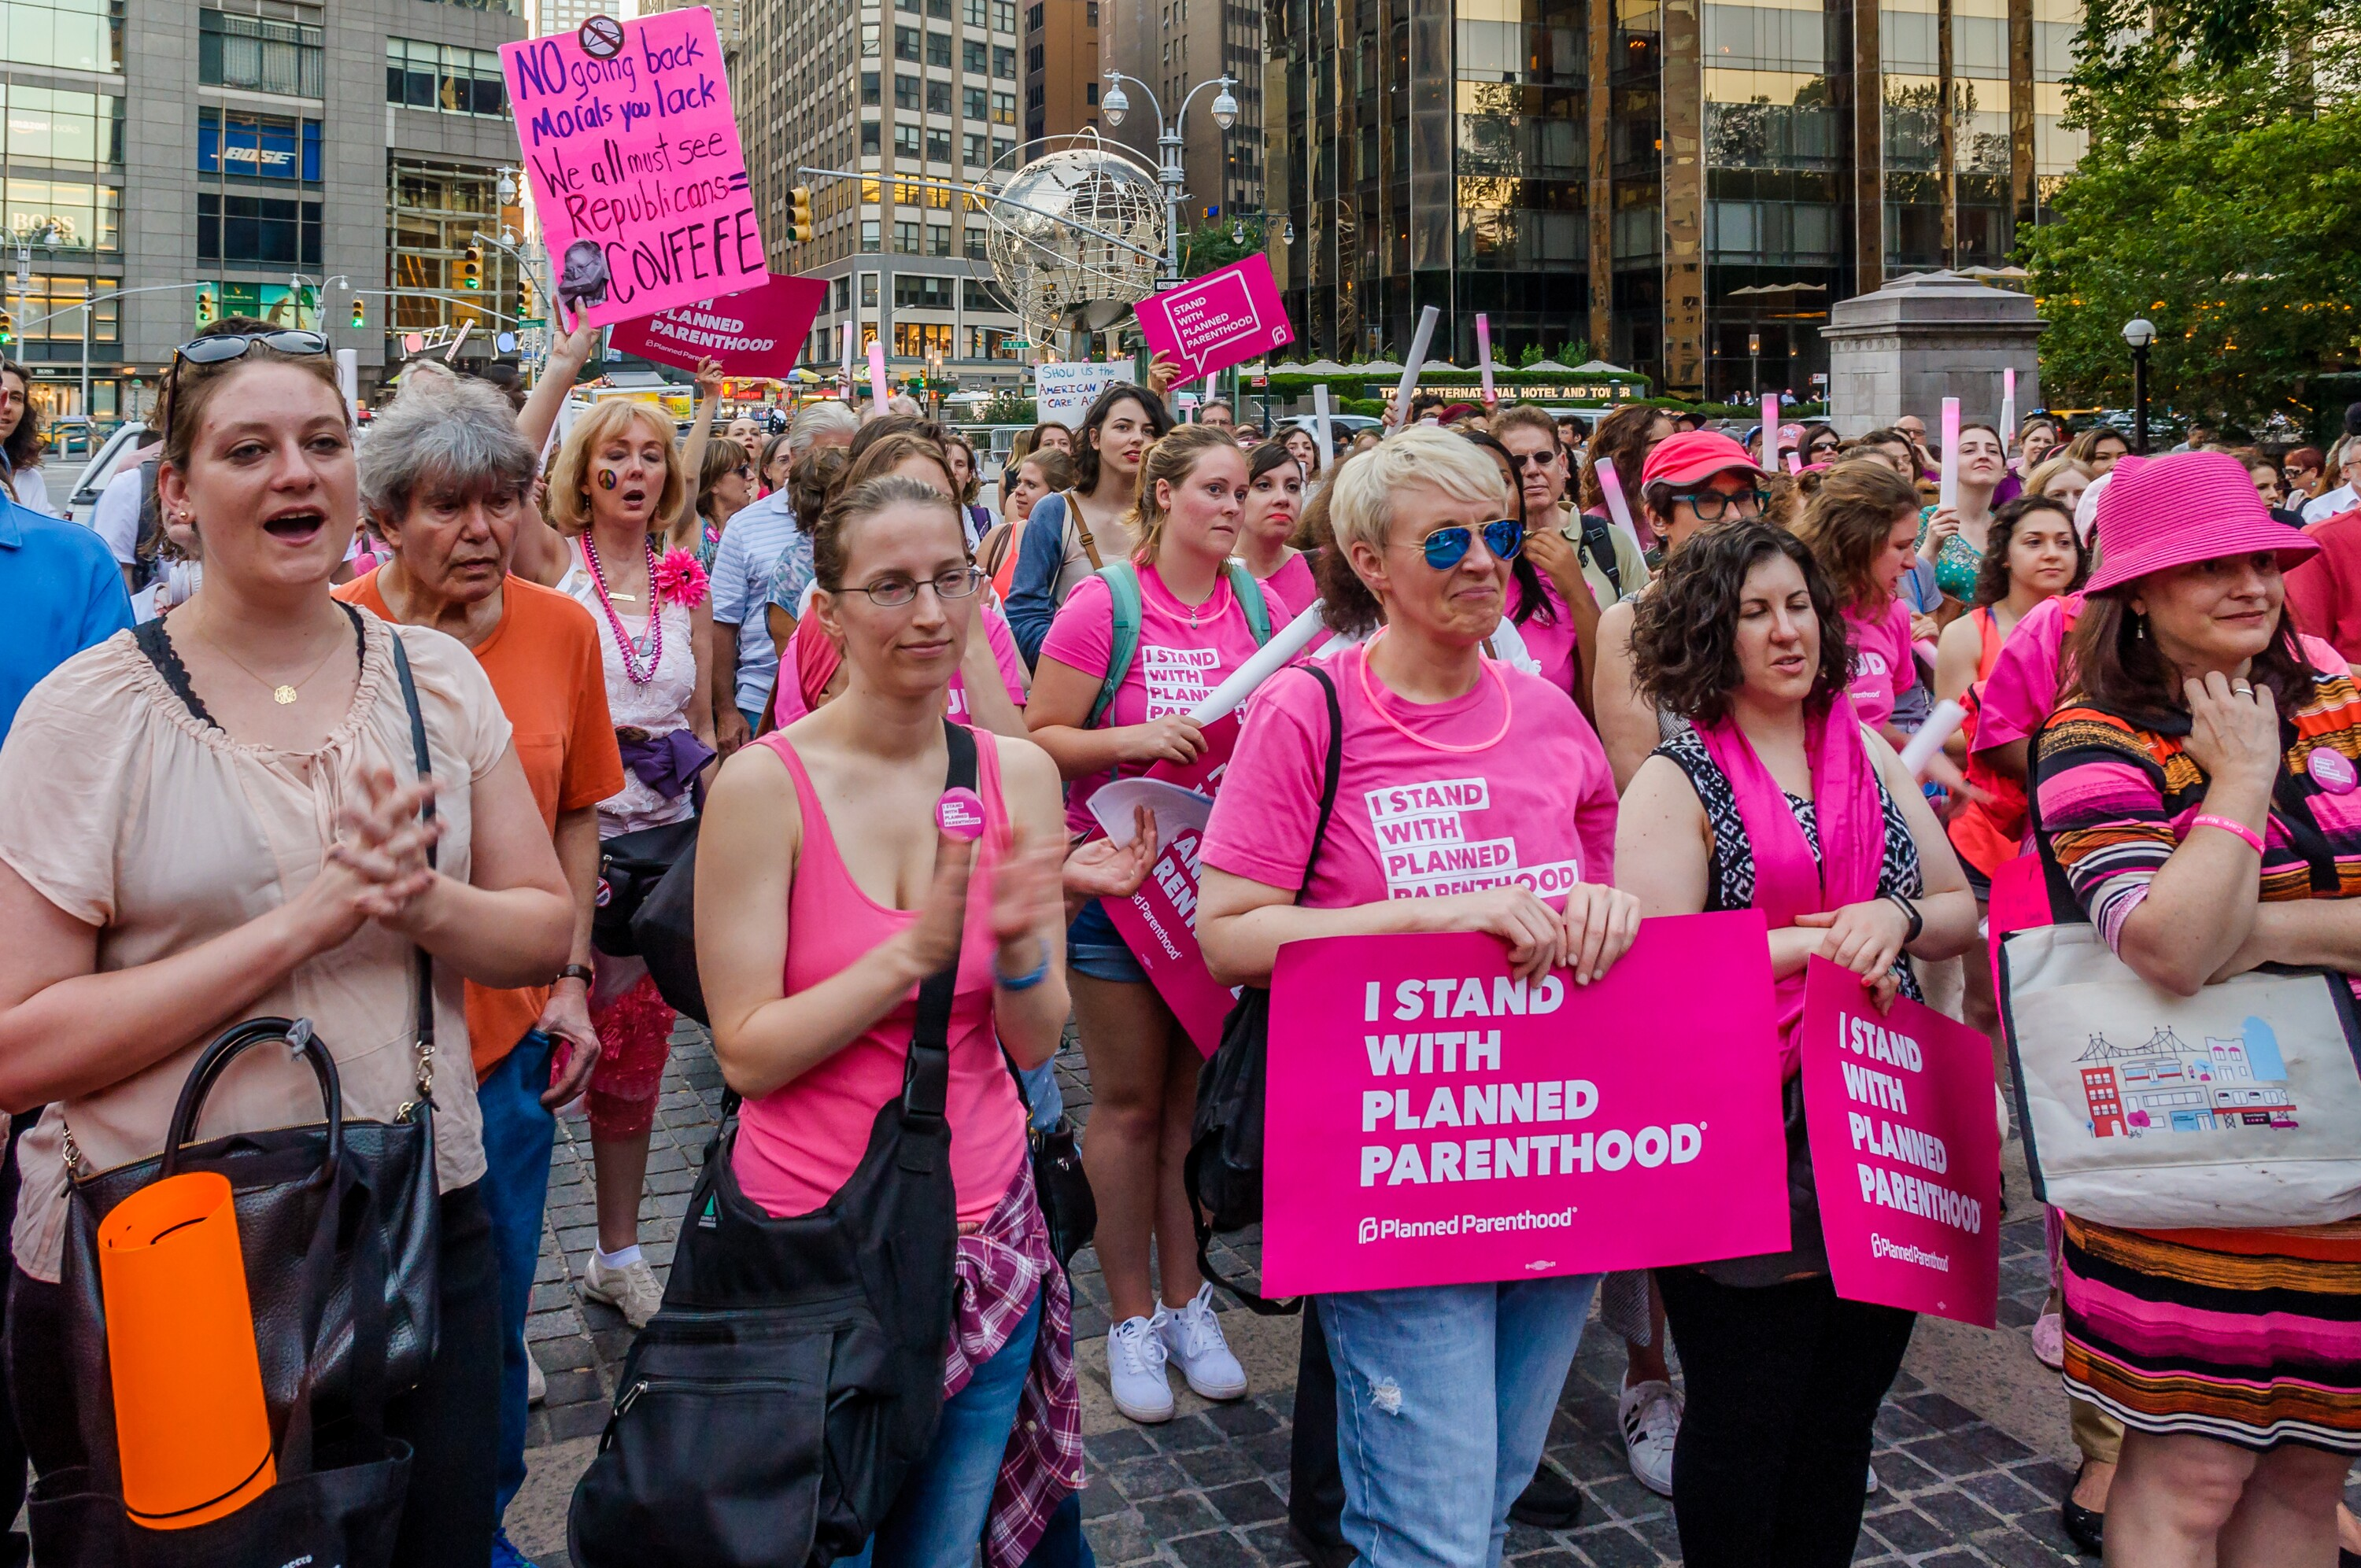 Does Hate Planned Parenthood Adoption Why